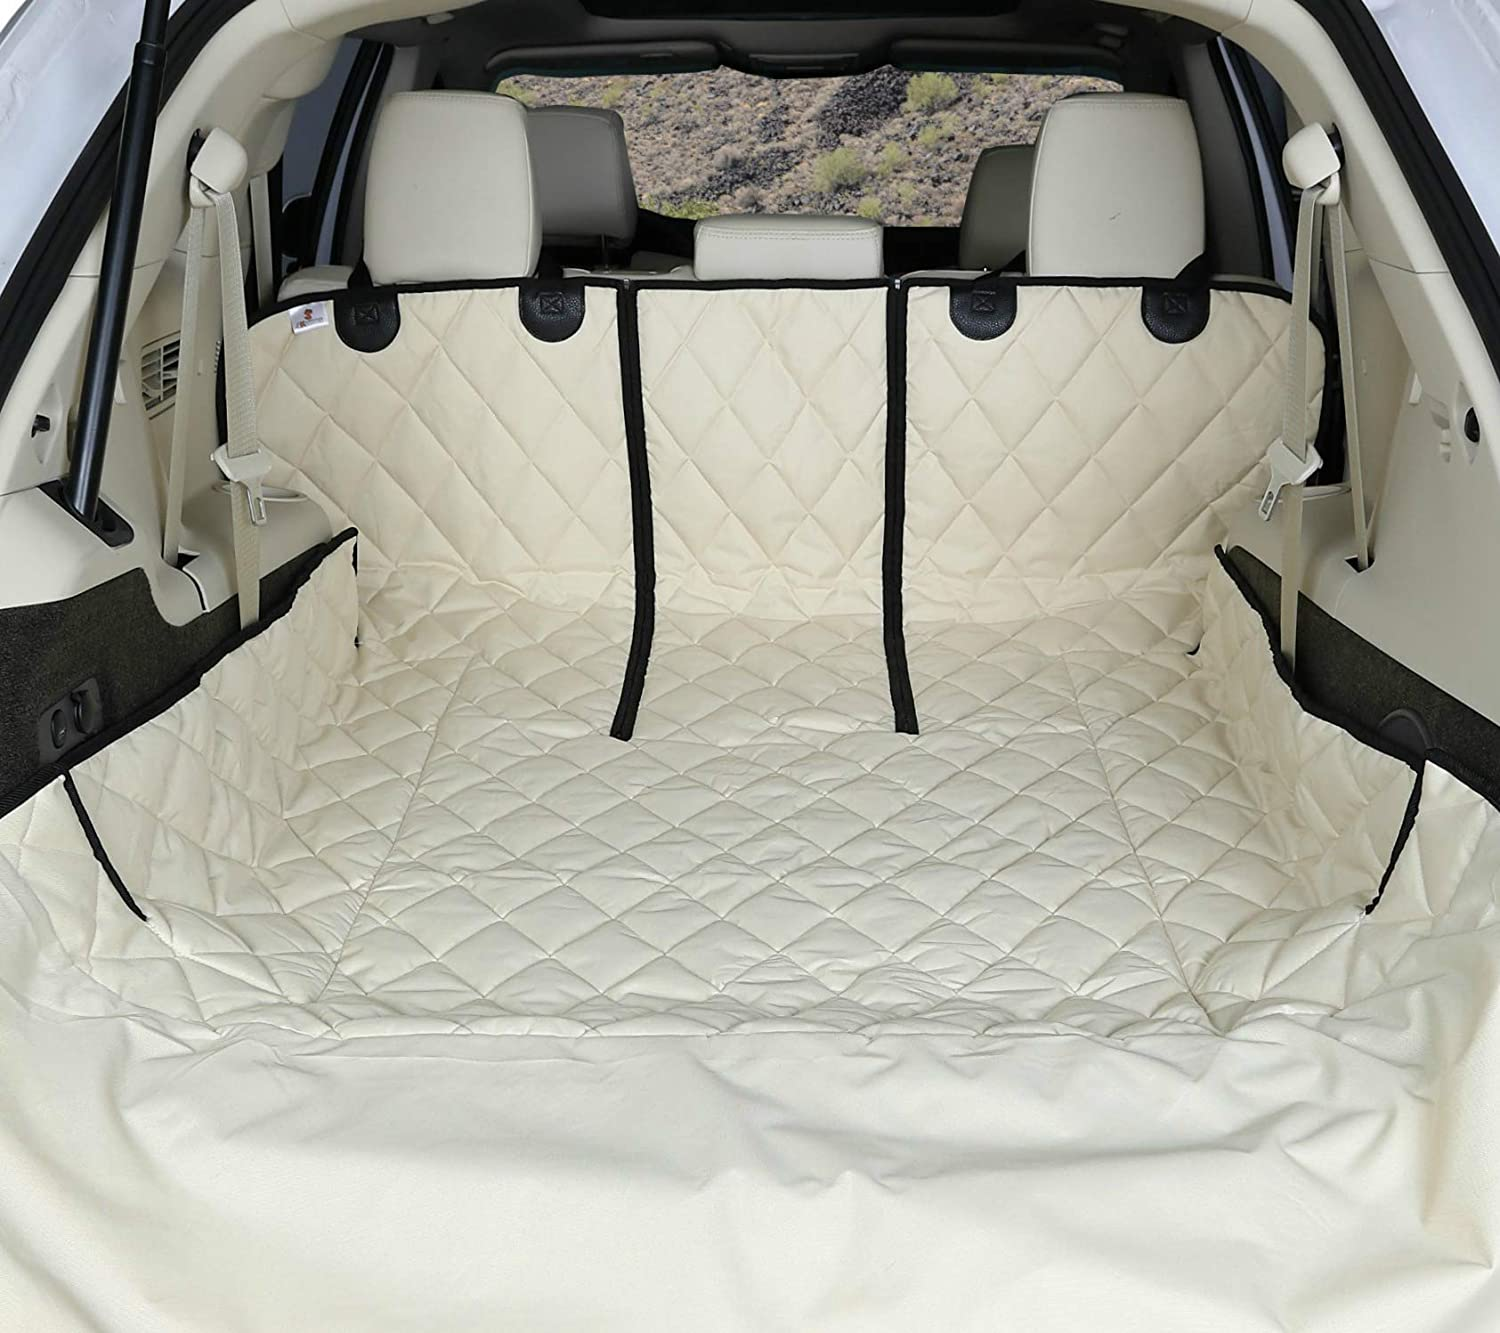 Large, Tan USA Based Company 4Knines SUV Cargo Liner for Fold Down Seats 60//40 Split and Armrest Pass-Through Compatible